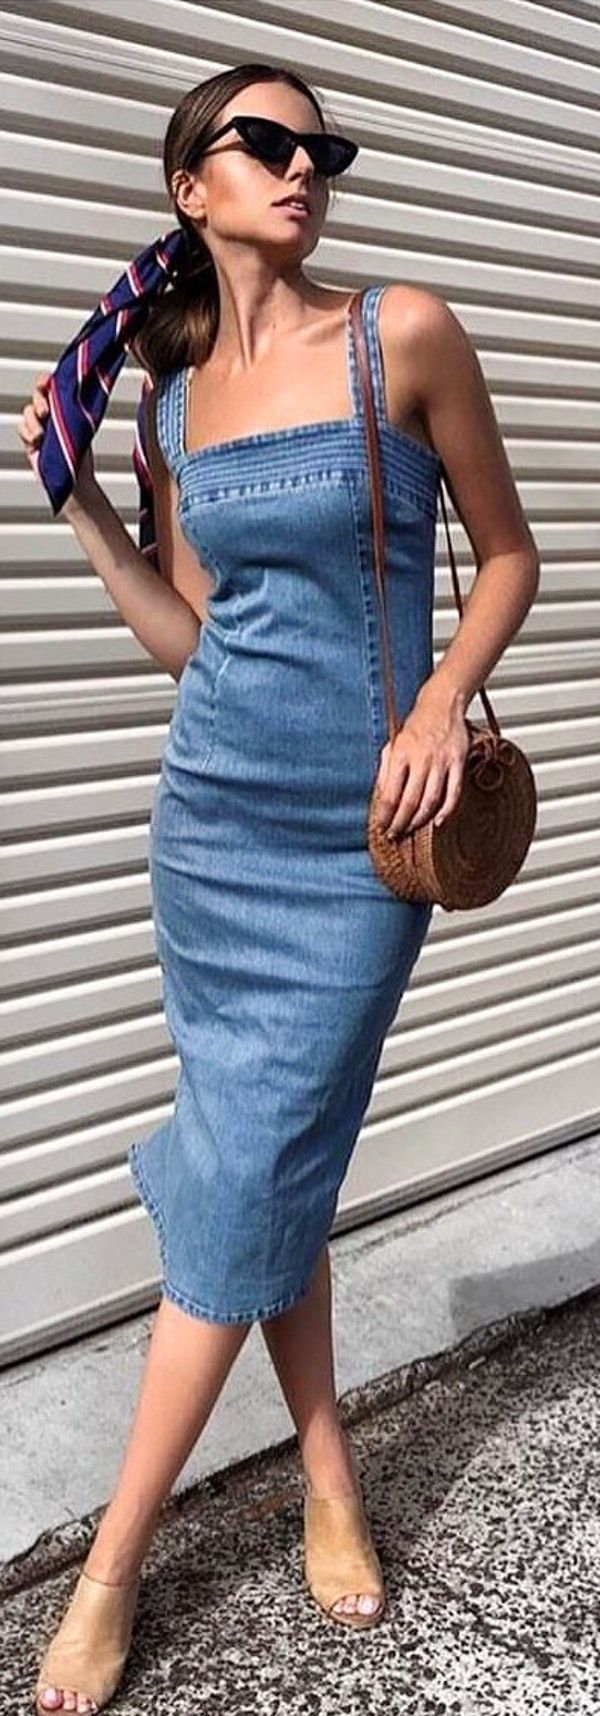 #spring #outfits  woman in blue denim square-neckline sleeveless dress standing near wall. Pic by @onefleur_